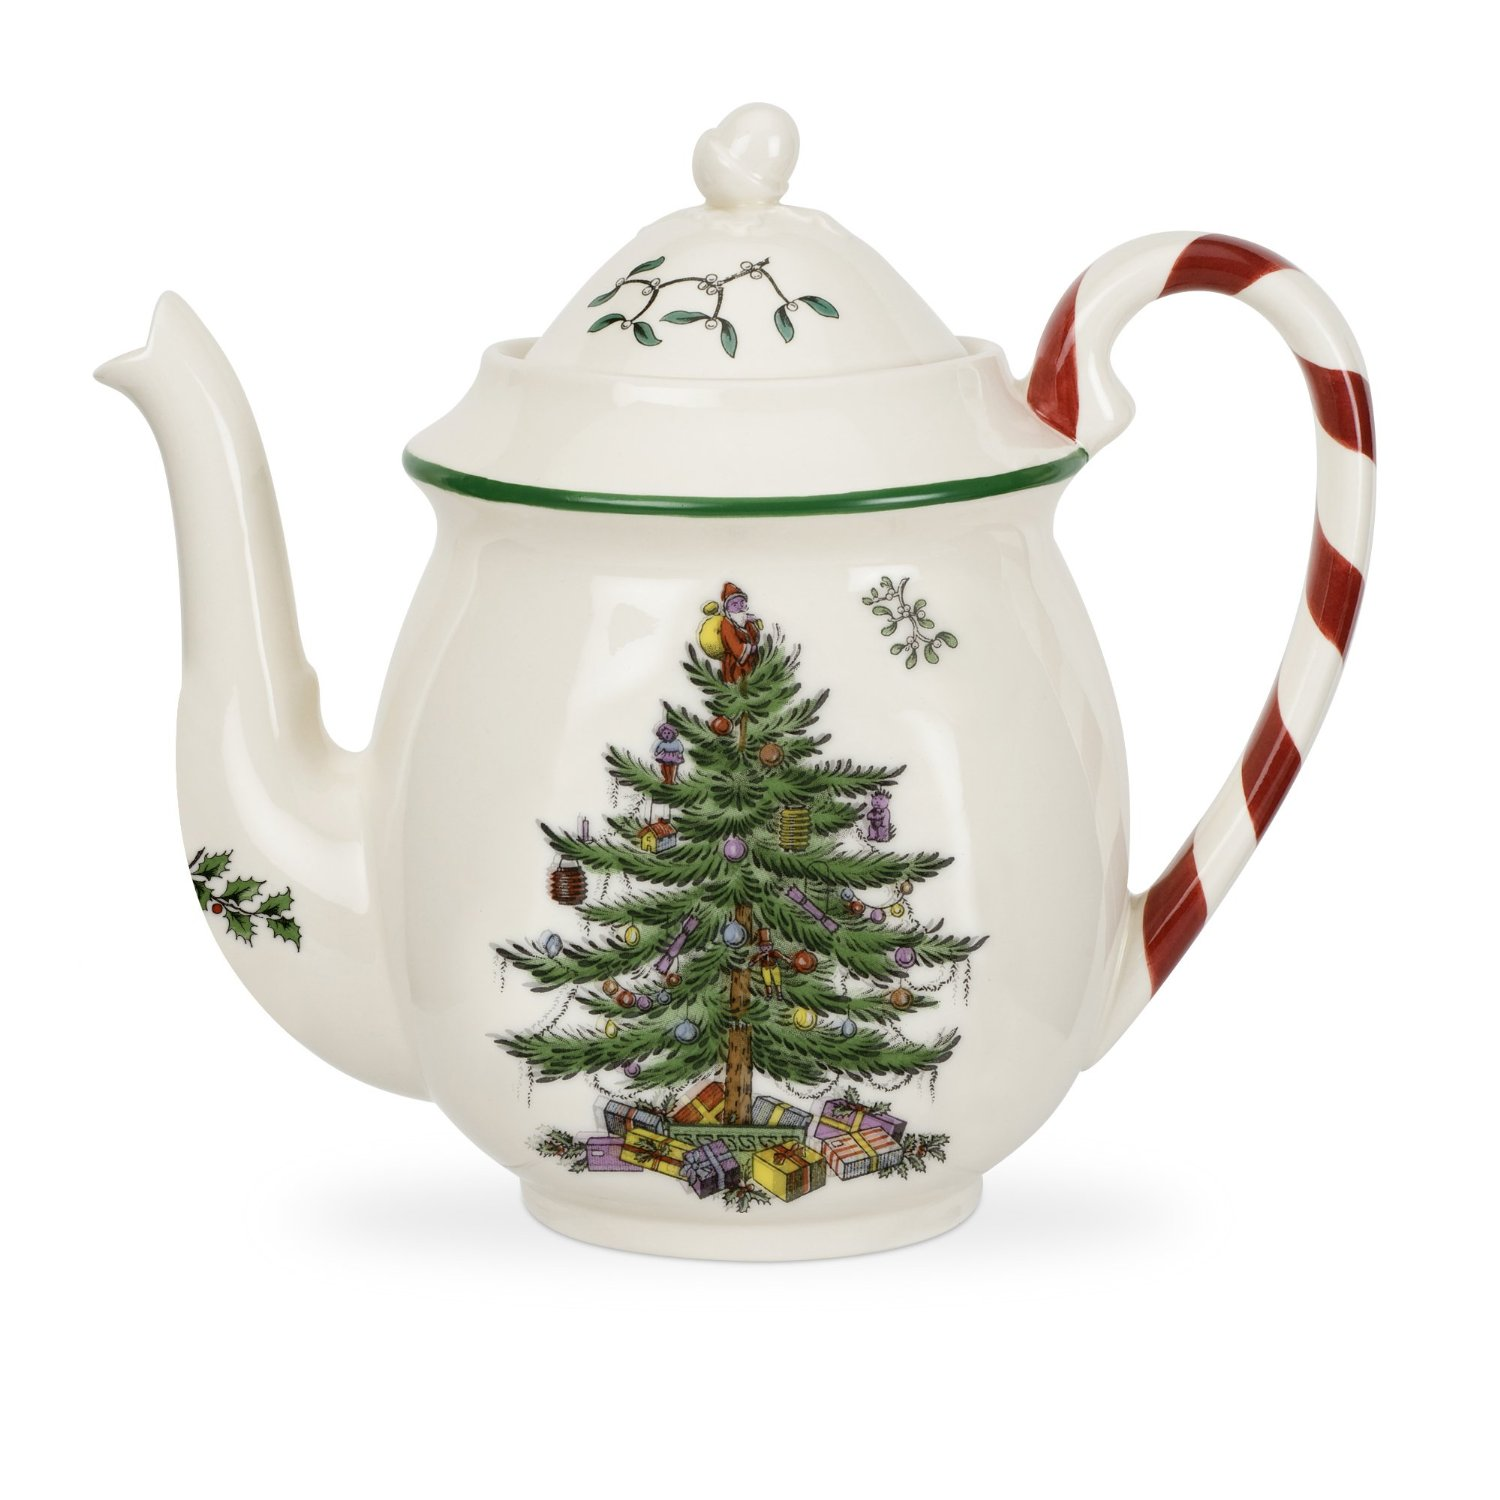 Holidays So Why Not Add In A Special Holiday Teapot Useful For The Big